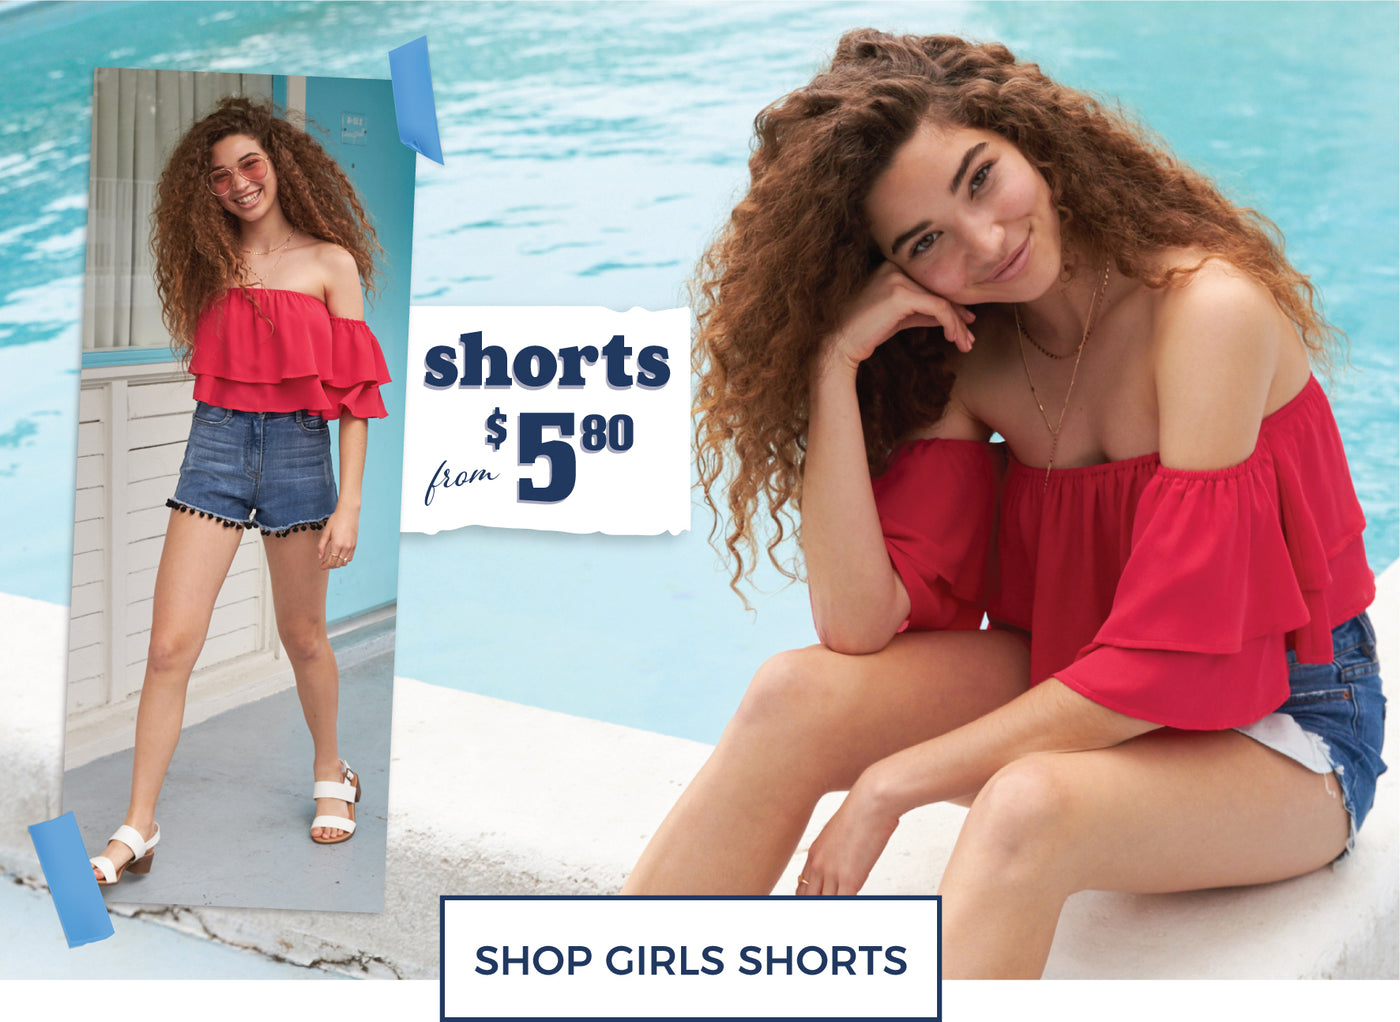 Shorts from $5.80 - Shop Girls Shorts